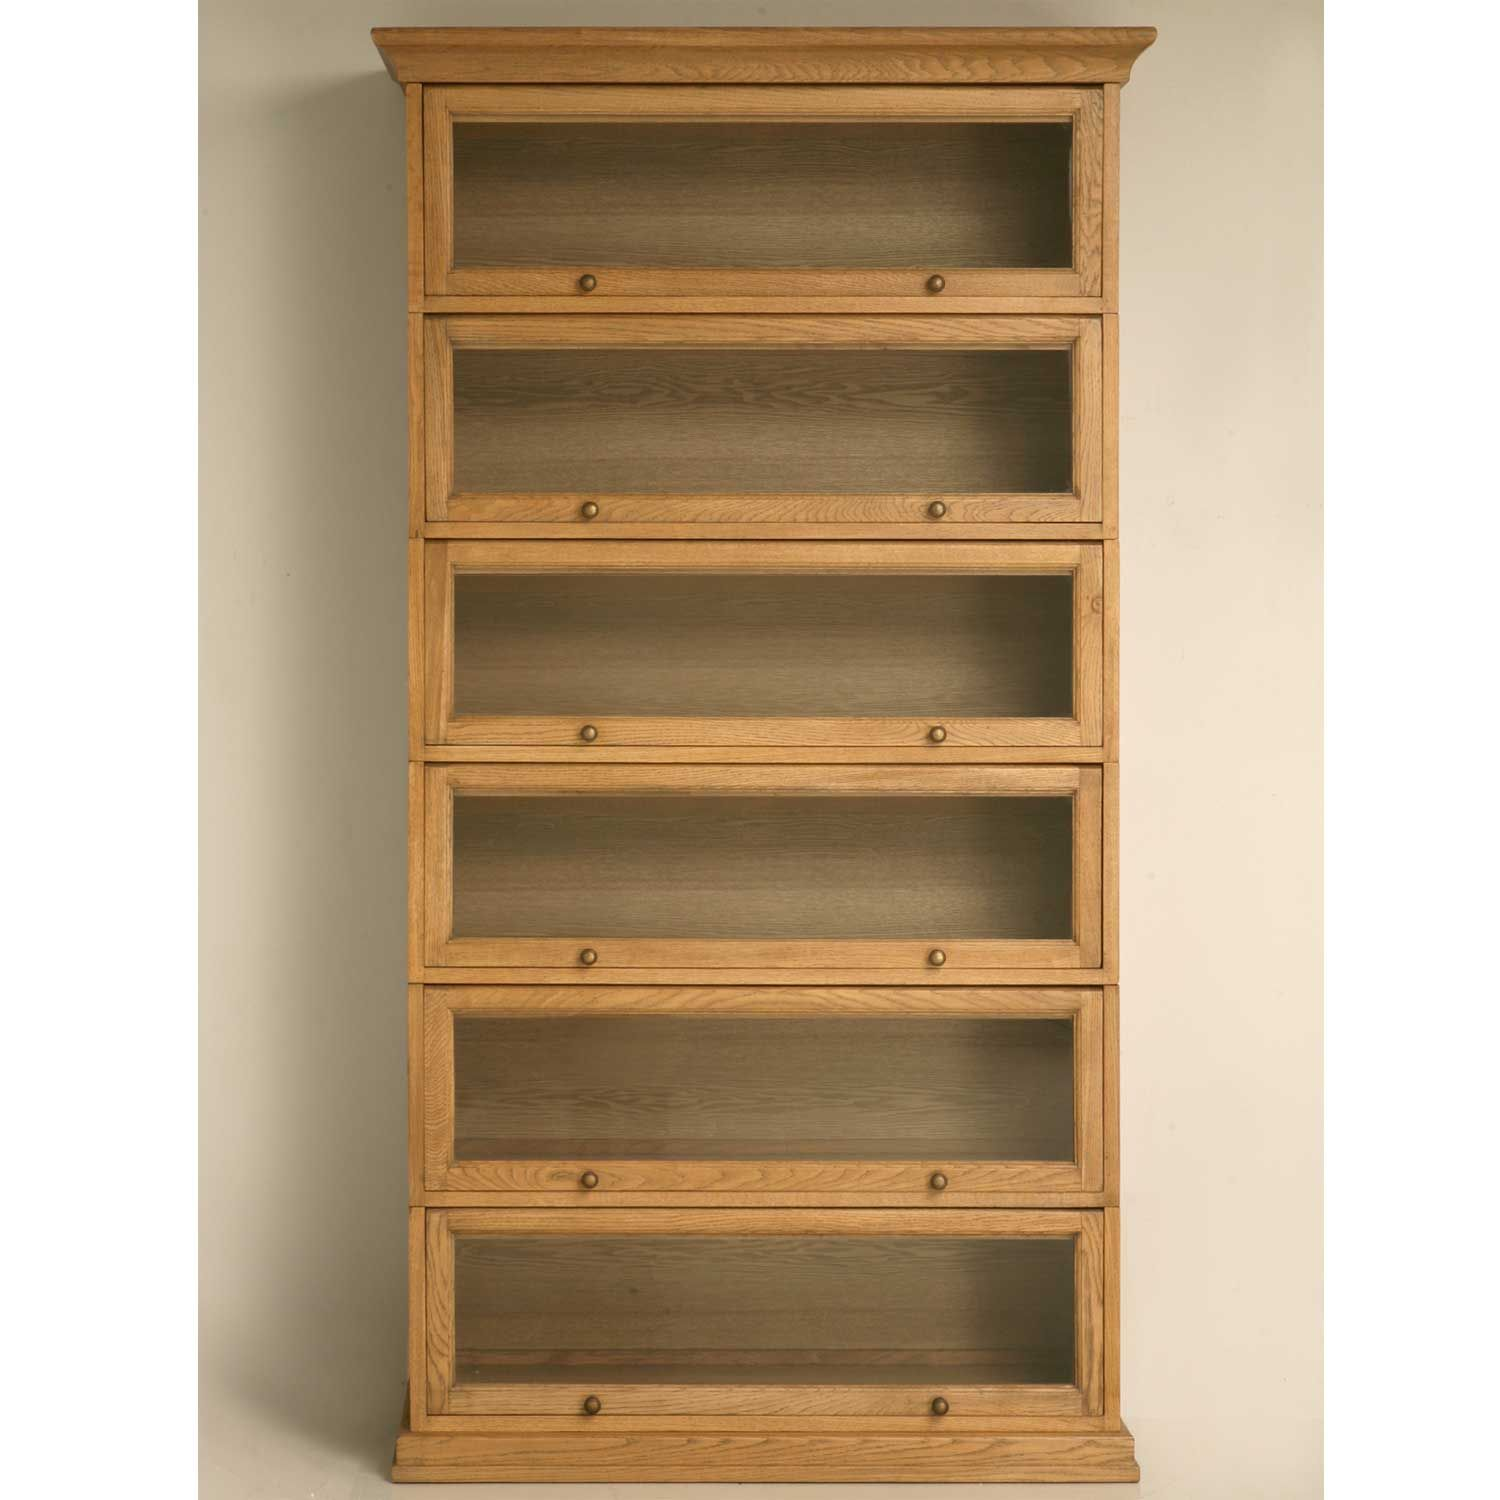 Bookcases Toronto Bookcases Oak Barrister Bookcase To Organize Your Books